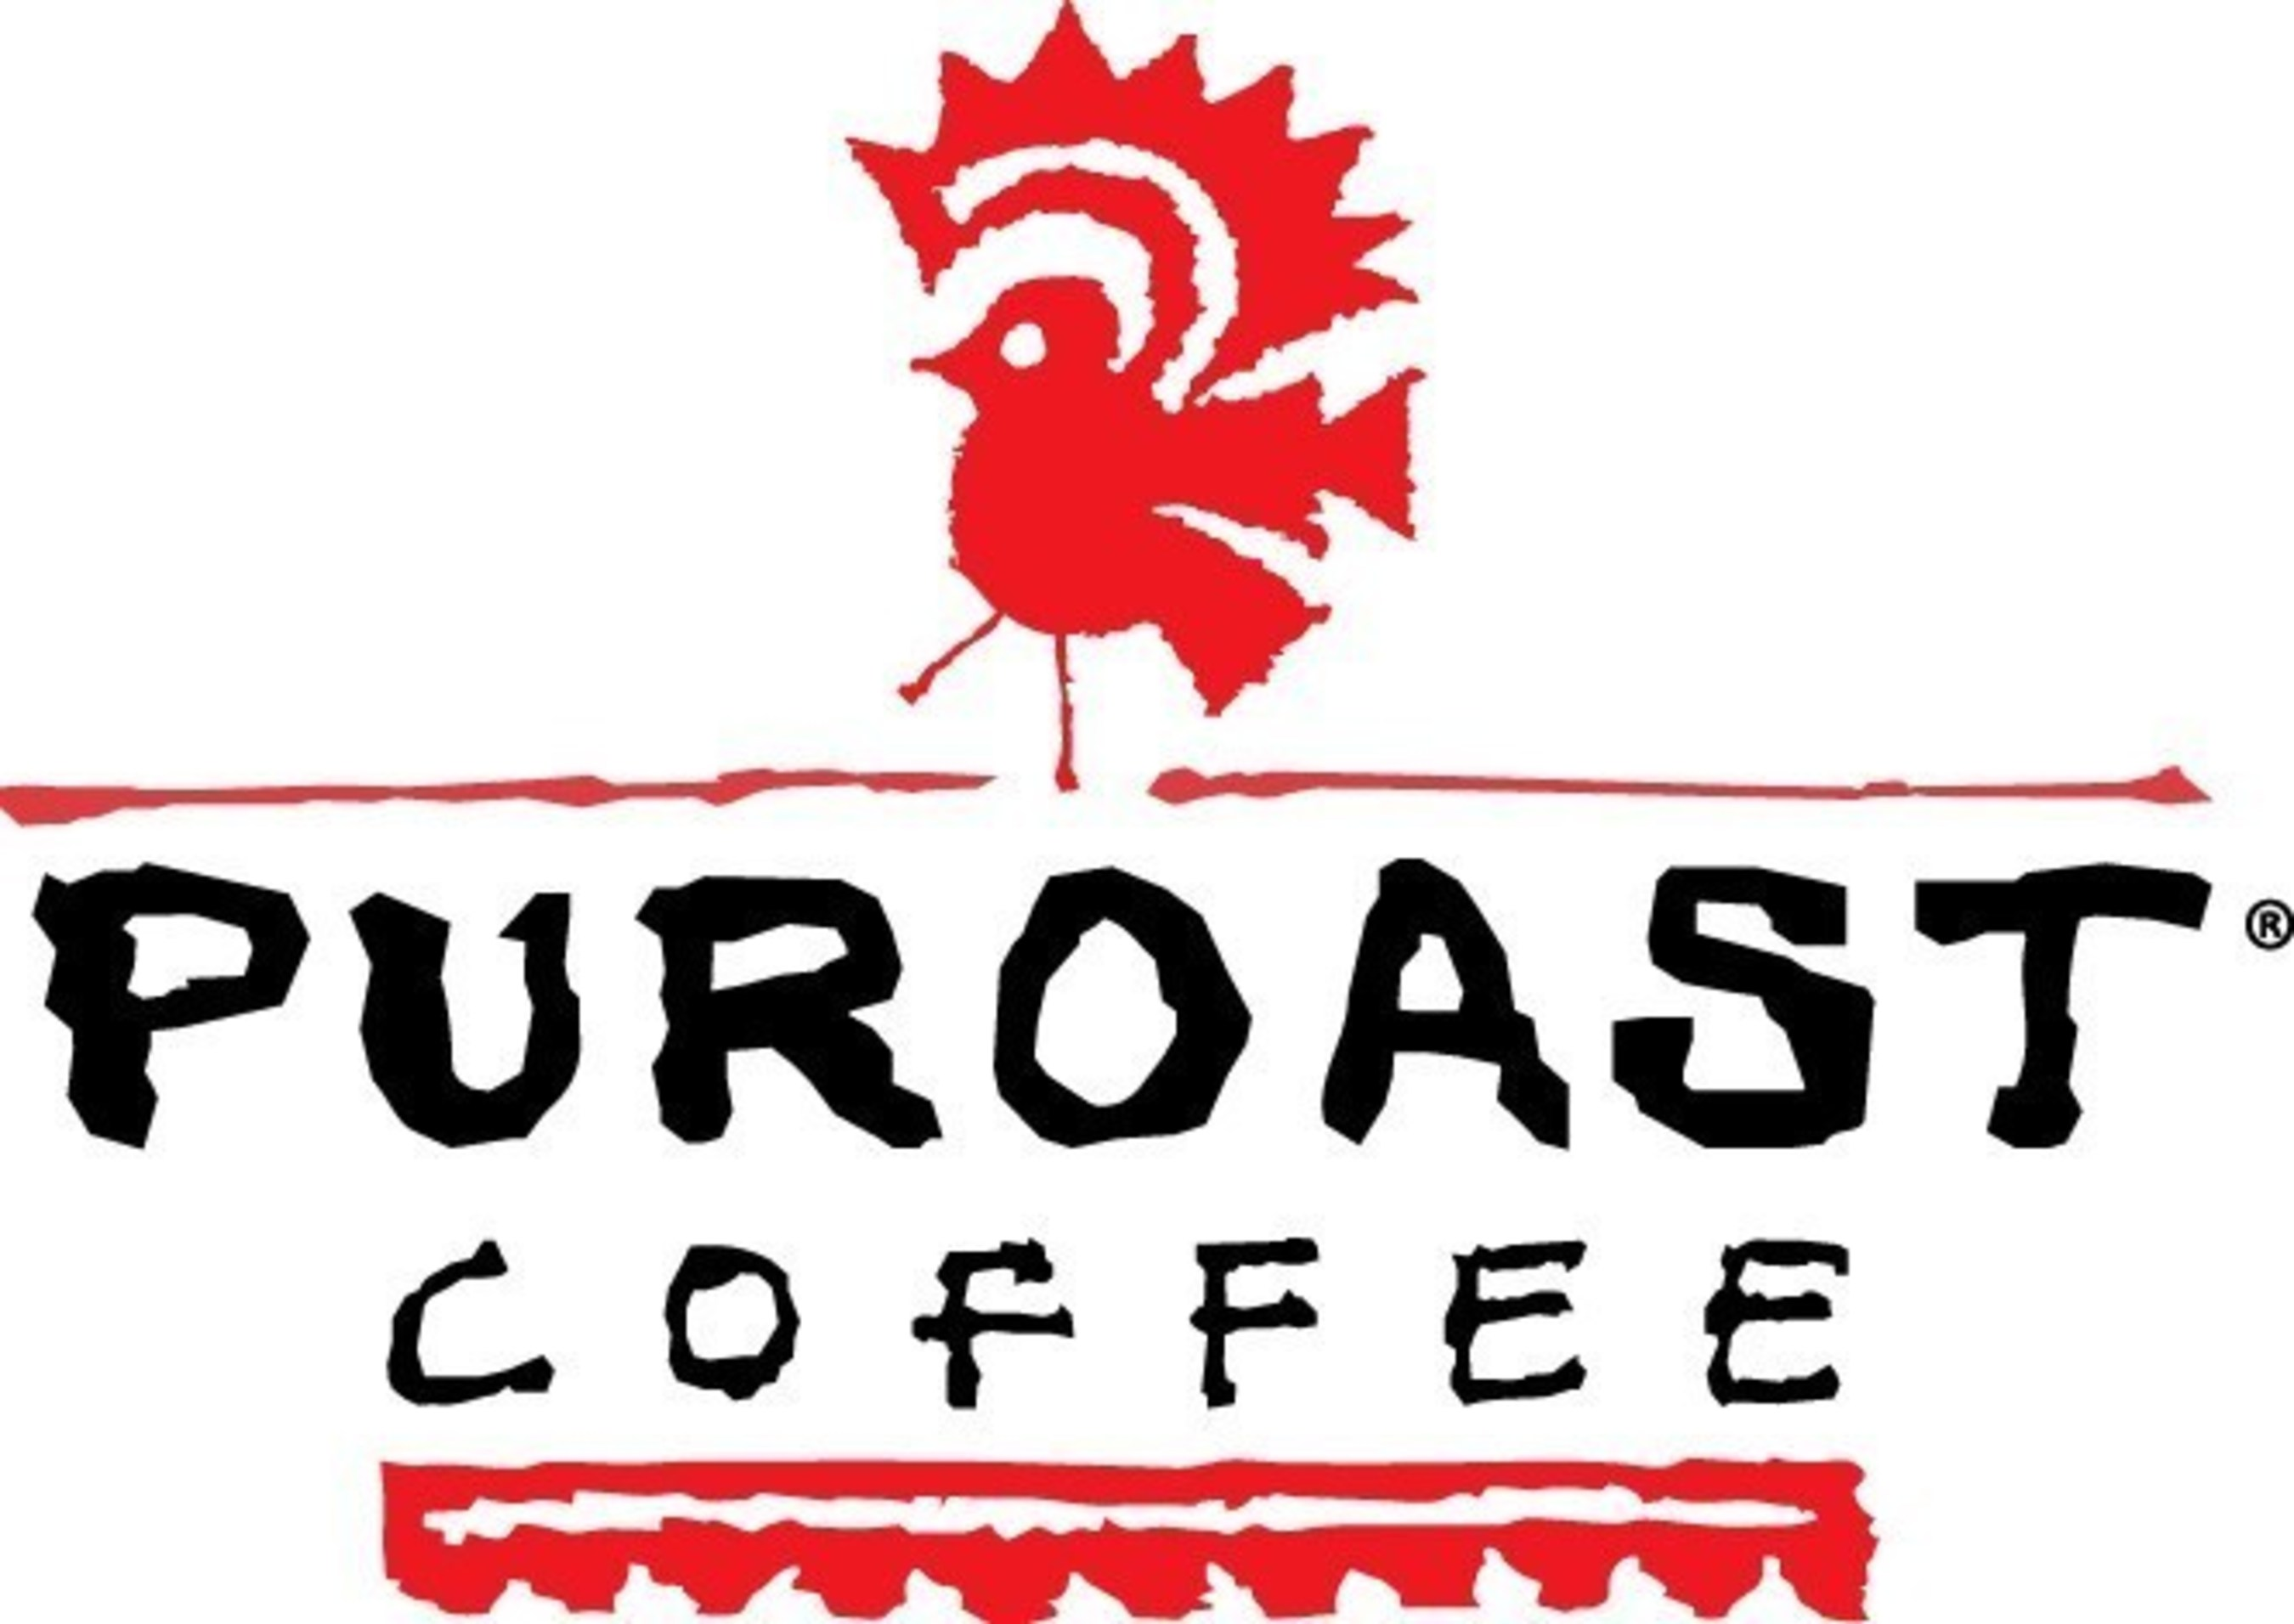 Puroast is the Grower's Coffee(TM) - coffee with a uniquely rich, smooth taste, much lower acid and an antioxidant boost. Puroast is distributed throughout the United States by major retailers including Kroger, Walmart, Publix, Stop & Shop, Giant, Hannaford and Whole Foods. Purchase Puroast online at Amazon and http://www.puroast.com. For more information about Puroast visit www.Puroast.com, www.facebook.com/PuroastCoffee or follow @puroastcoffee on Twitter and Instagram.